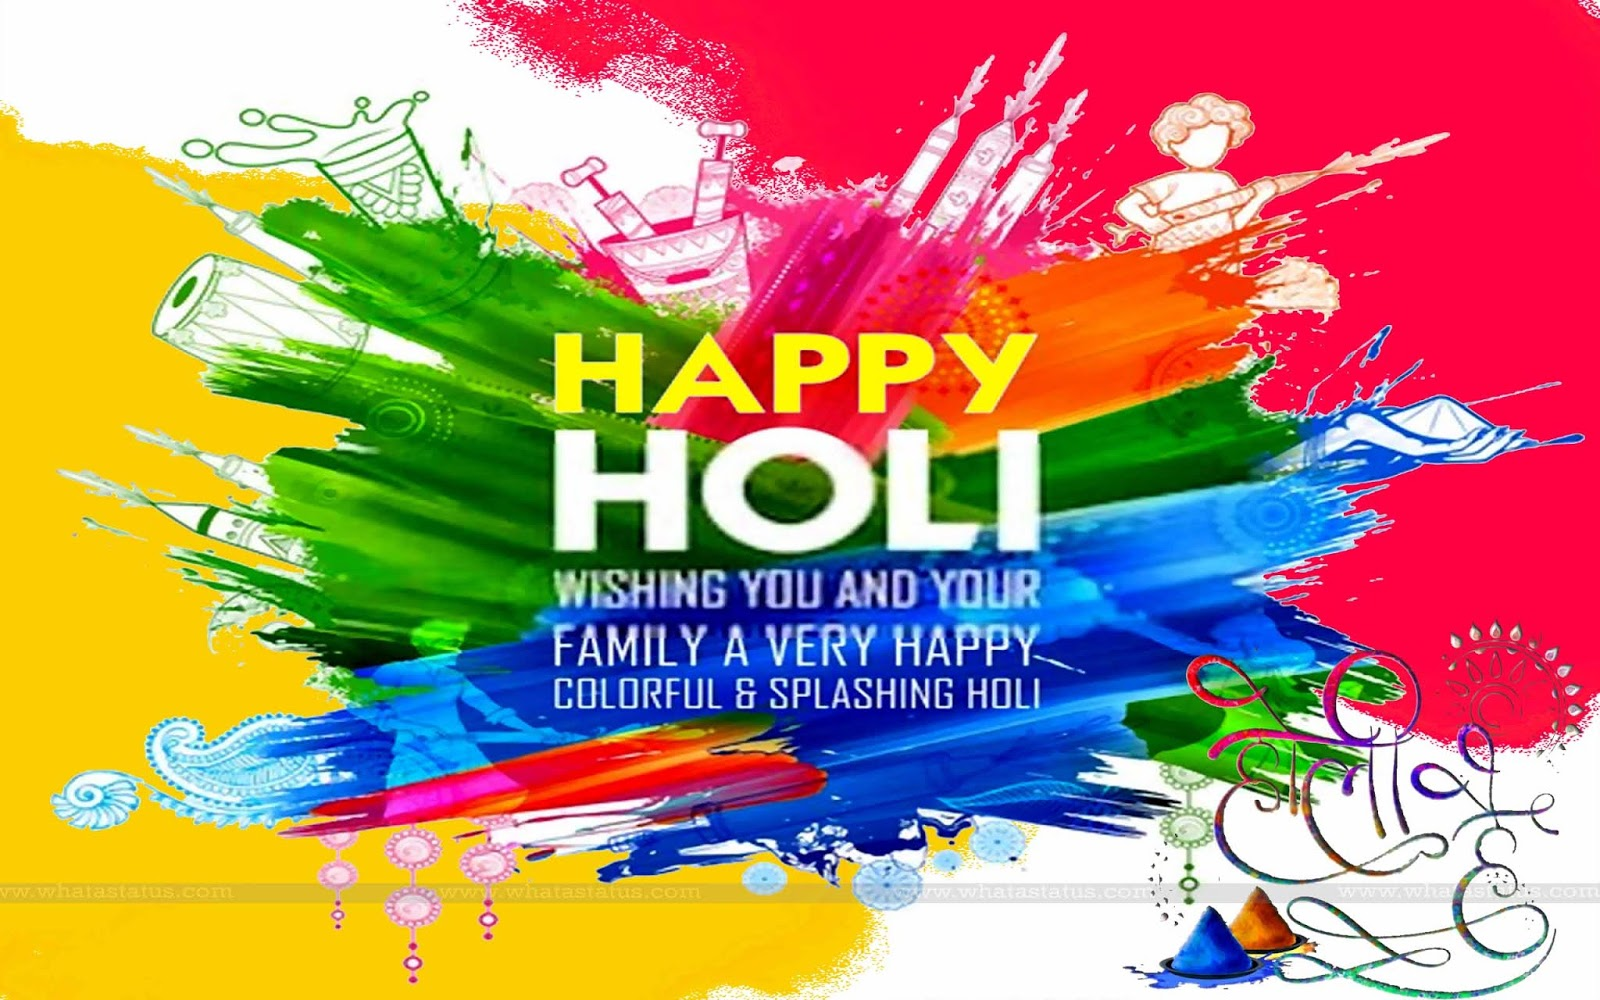 wishing-holi-image